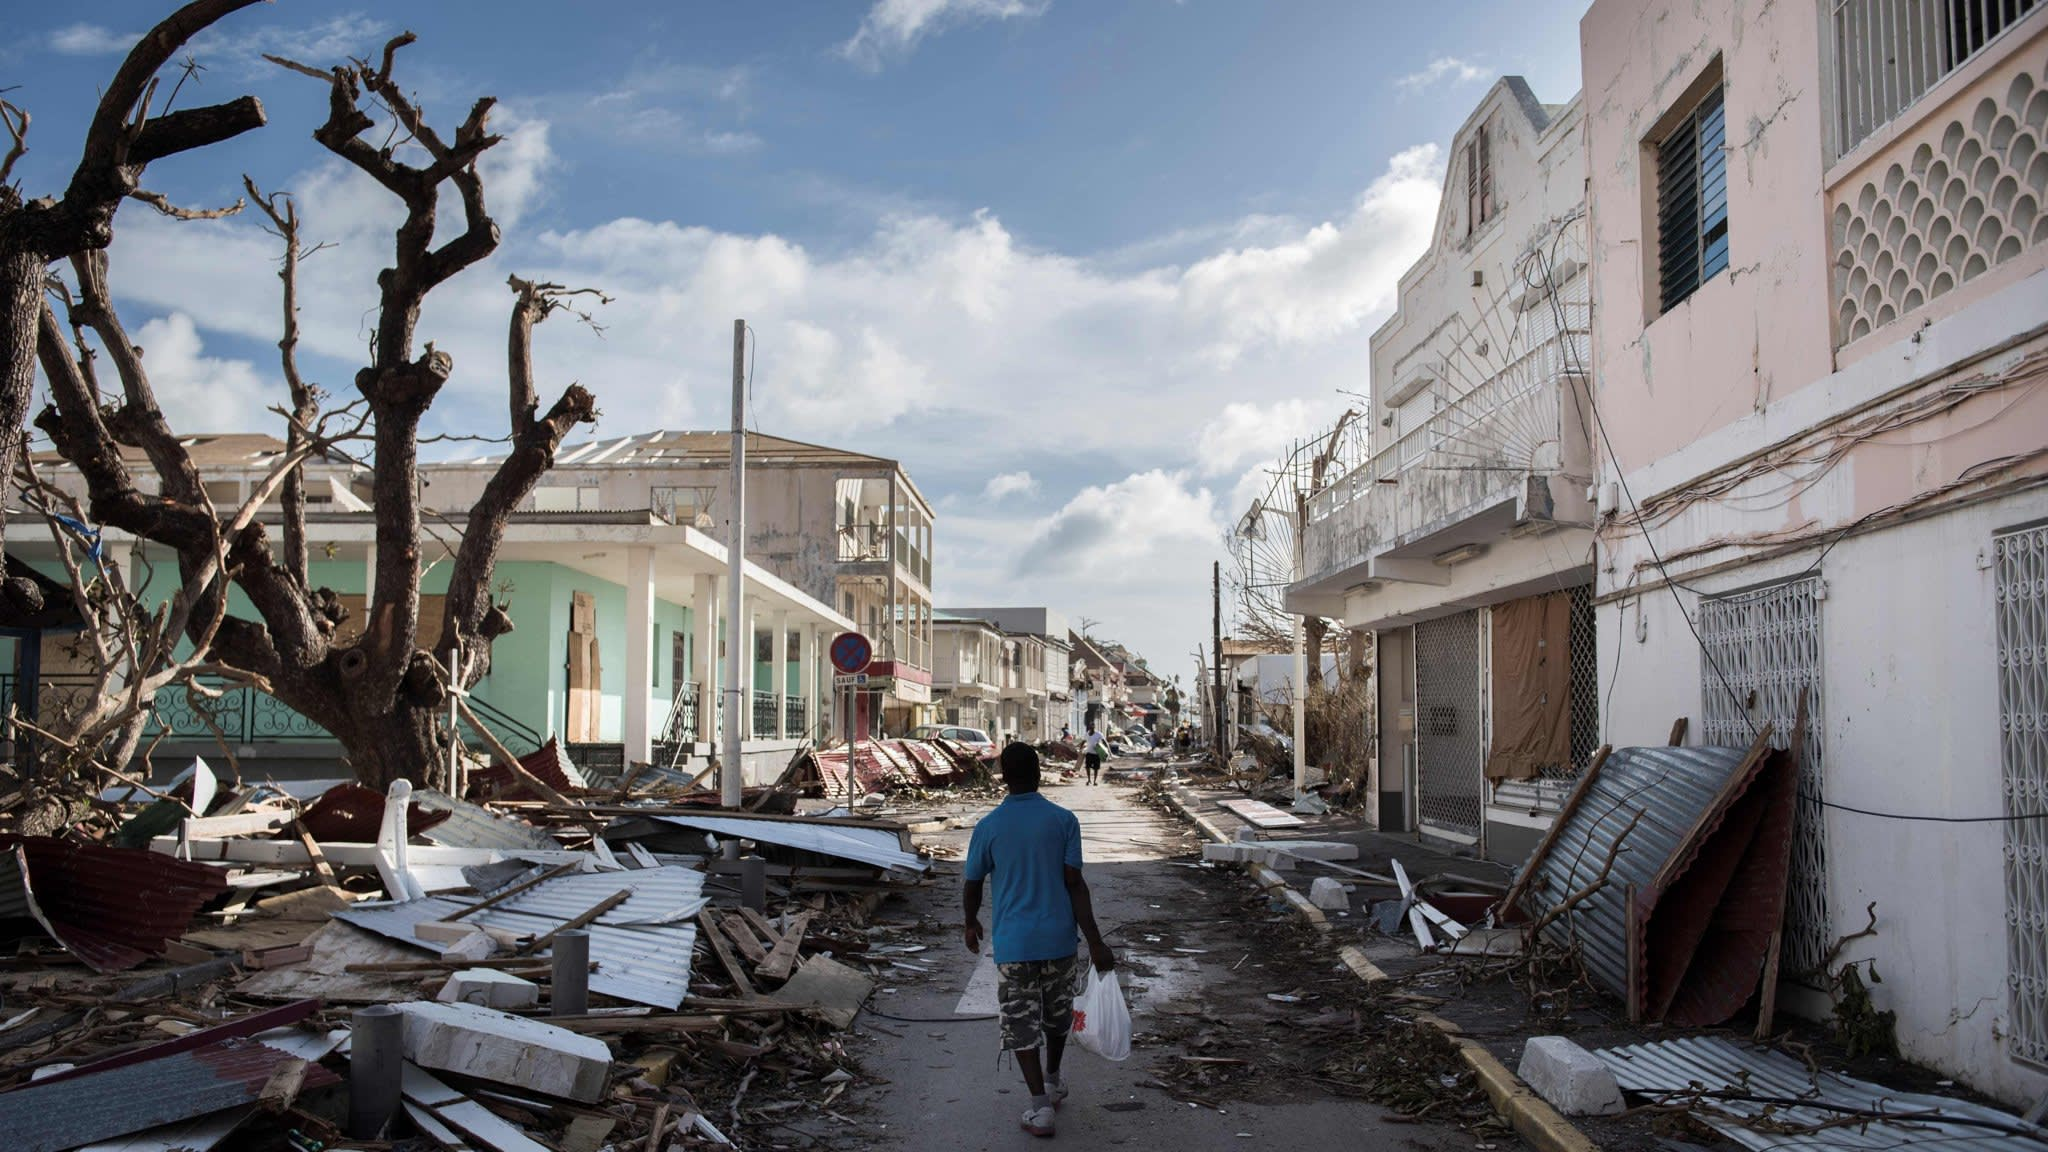 Reinsurers in pensive mood after year of disasters